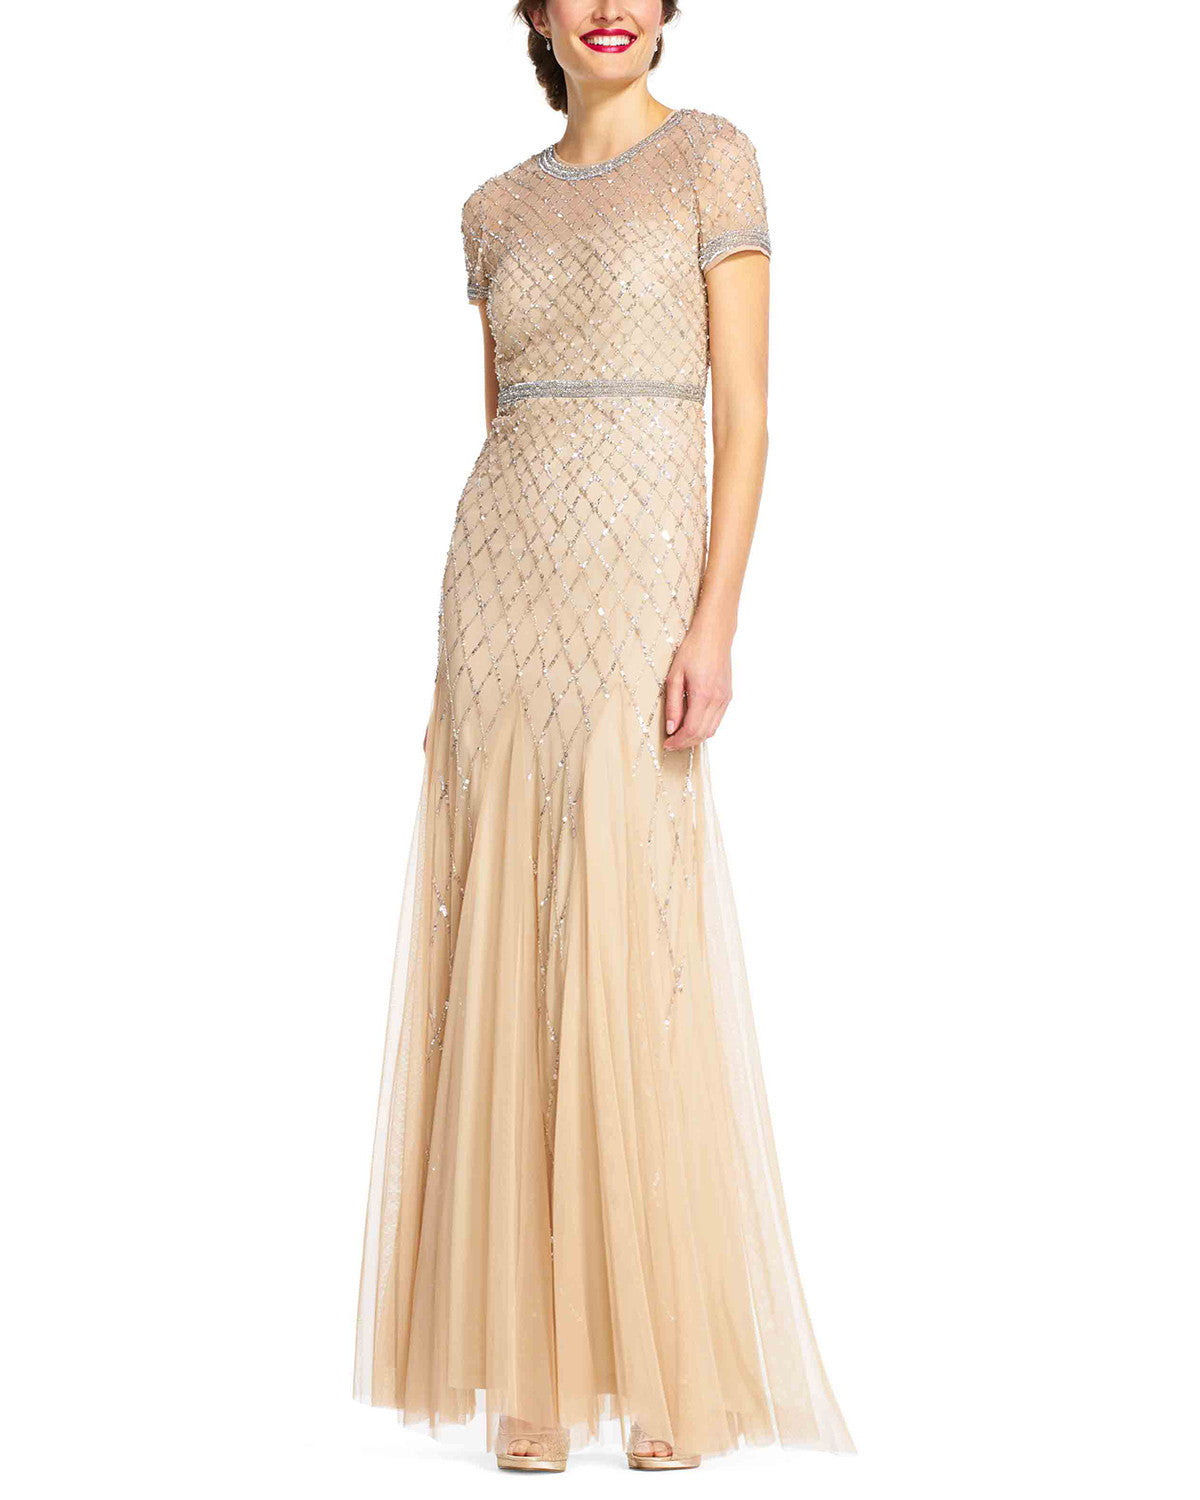 Adrianna Papell Cap Sleeve Beaded Gown in Champagne Bridesmaid Dress ...